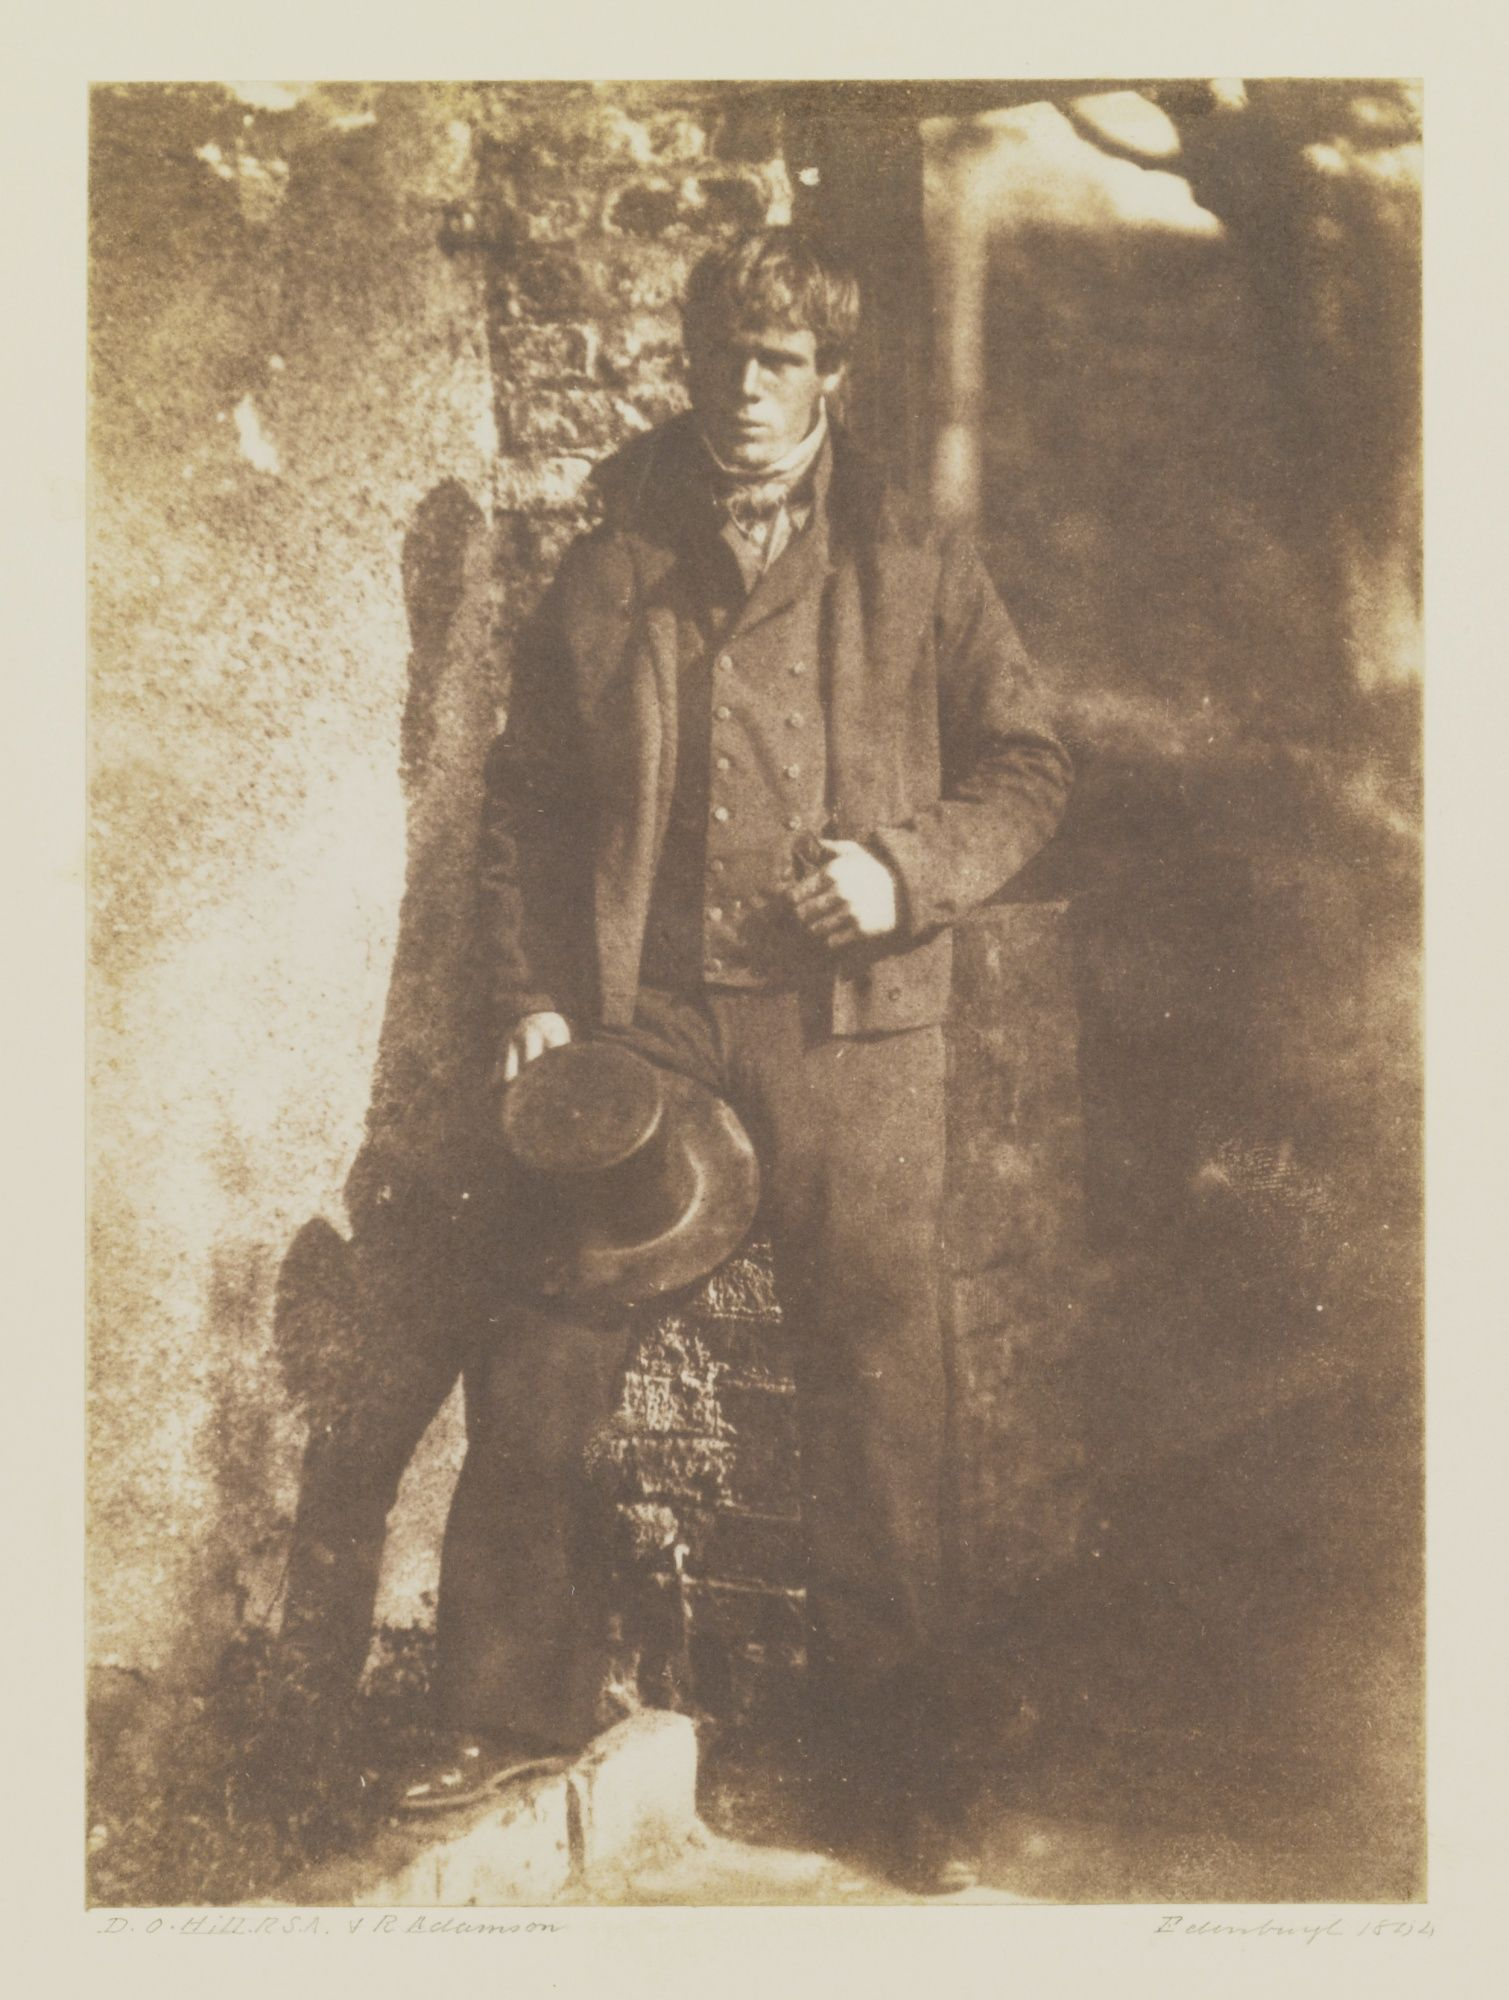 David Octavius Hill and Robert Adamson - A Newhaven fisherman, 1844